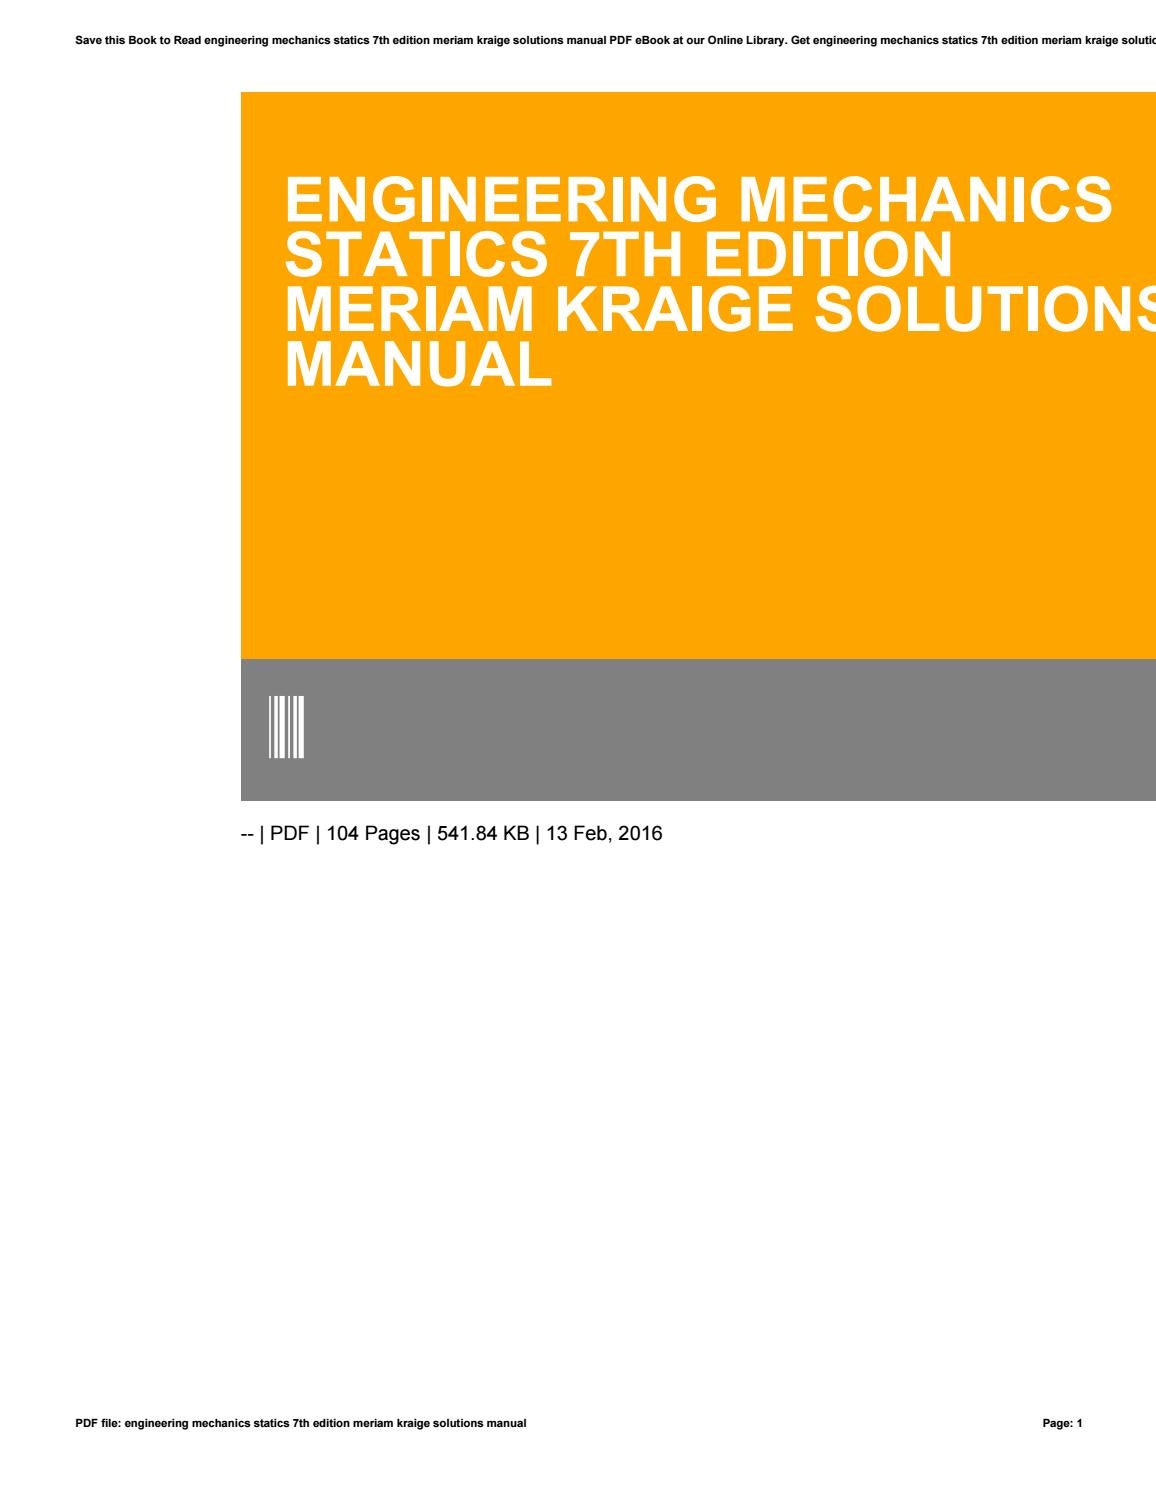 Engineering mechanics statics 7th edition meriam kraige solutions manual by  wulan13amartha - issuu